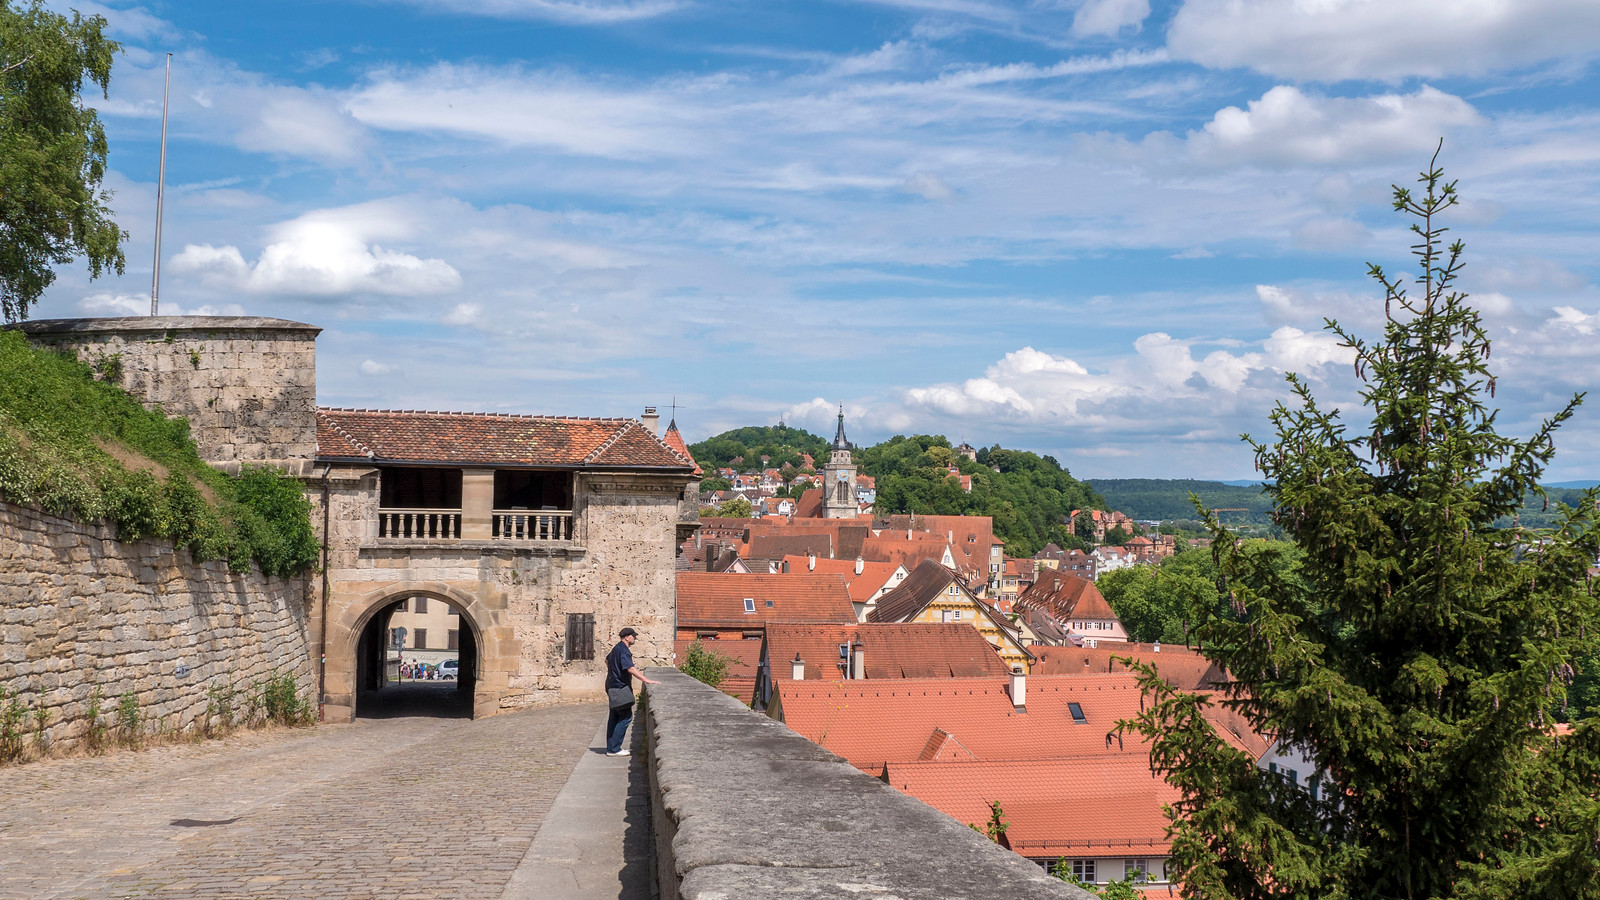 Views from the Schloss. Things to do in Tubingen Germany.